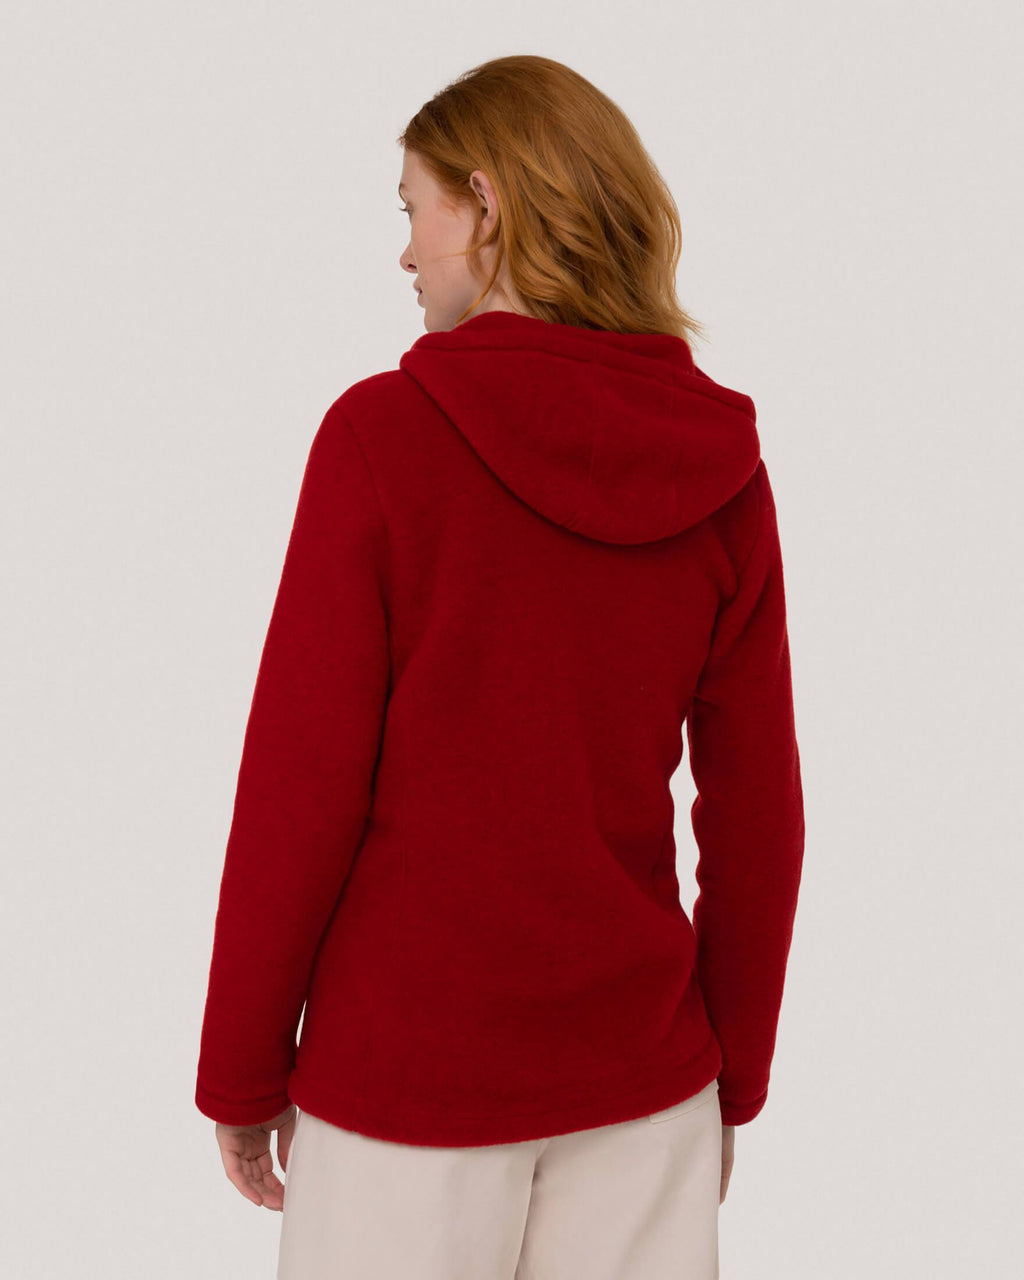 variant_1 | EN Red Jacket with Zipper Virgin Wool Women ENGEL | DE Rote Jacke mit Reißverschluss Damen ENGEL